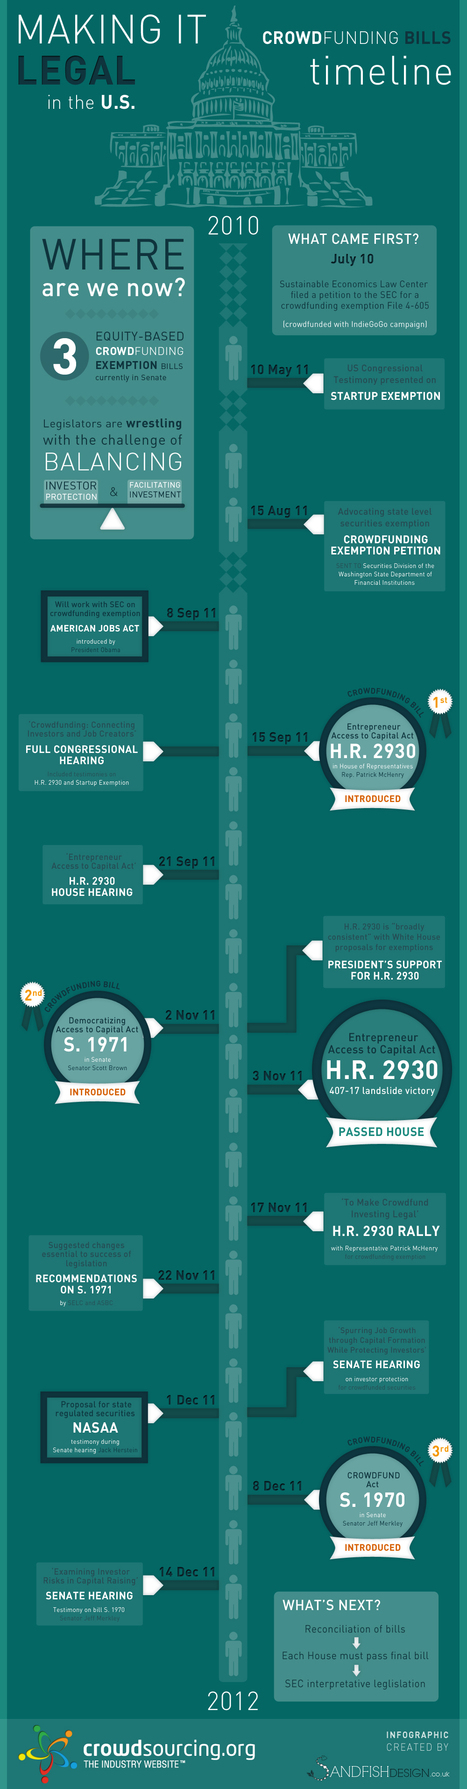 Timeline of the US crowdfunding bills (Infographic) | Crowdfunding World | Scoop.it